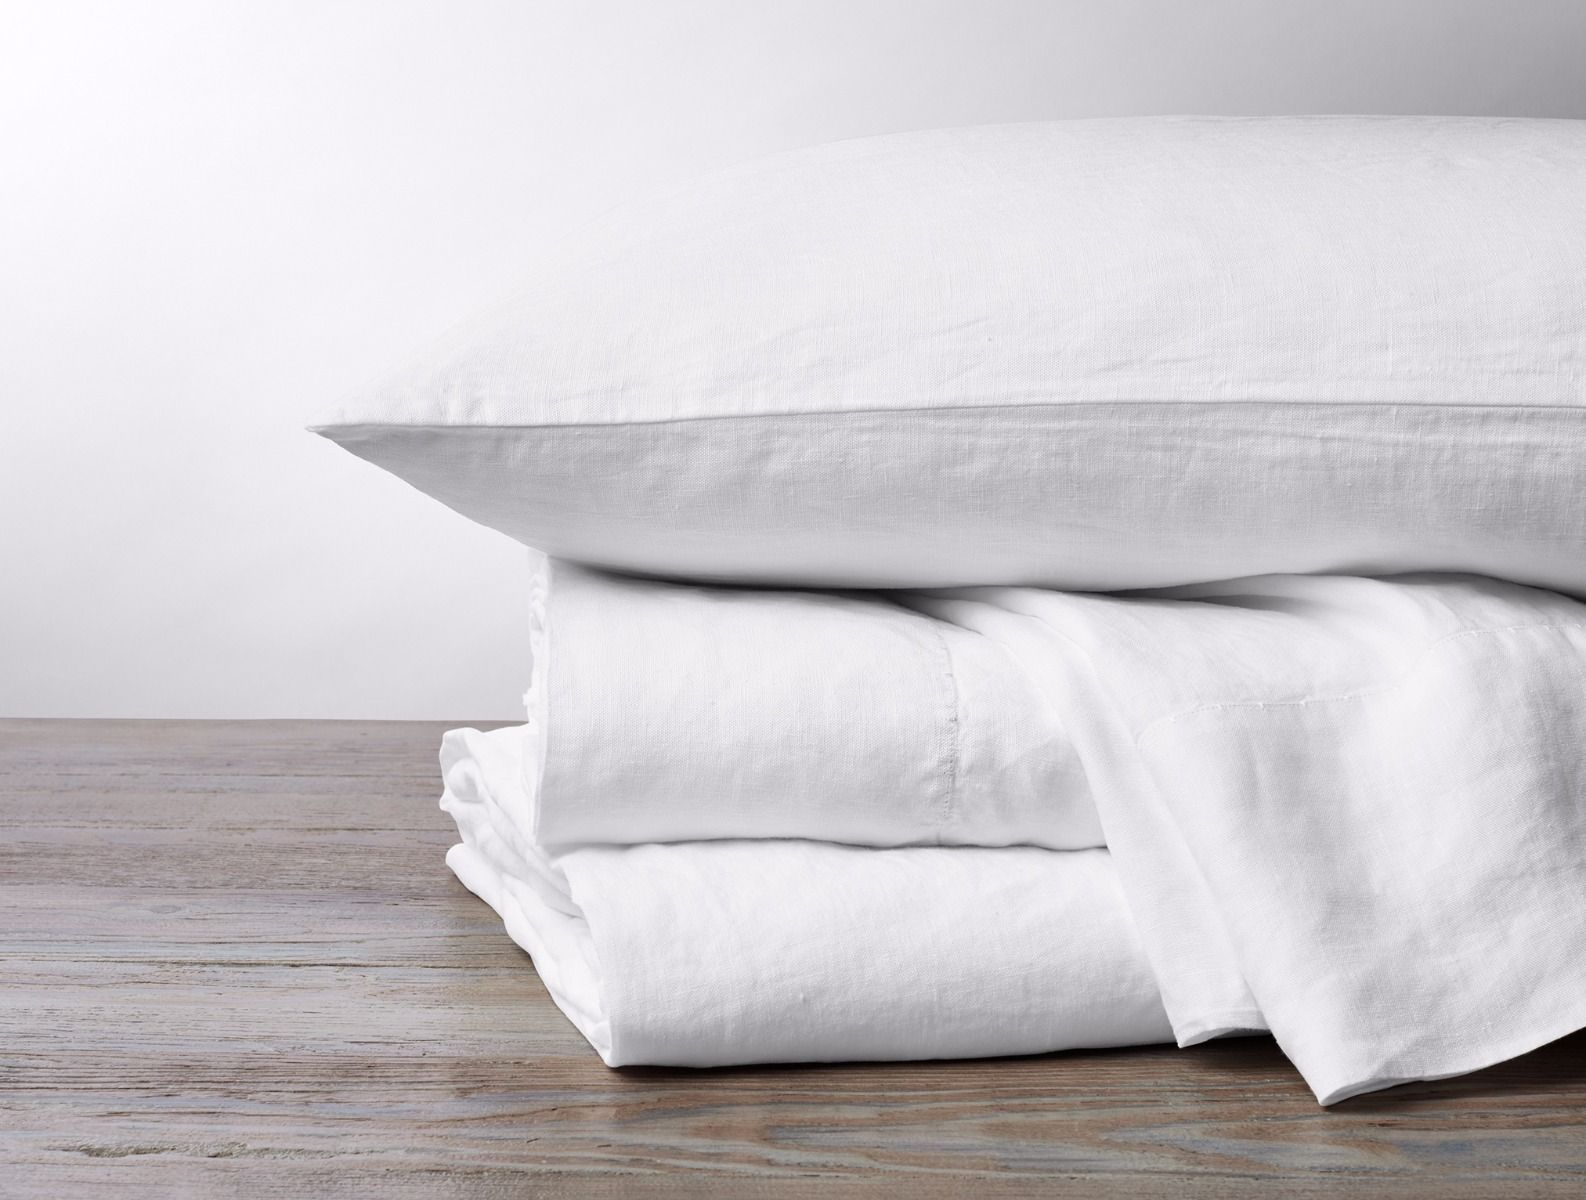 Alpine White Organic Relaxed Linen Bedding by Coyuchi